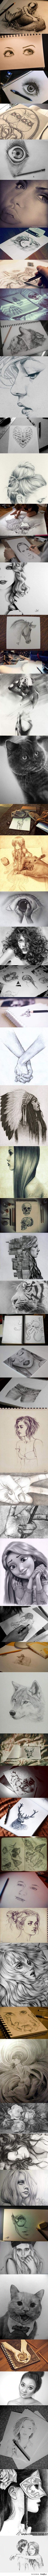 Wow. This makes me want to draw again